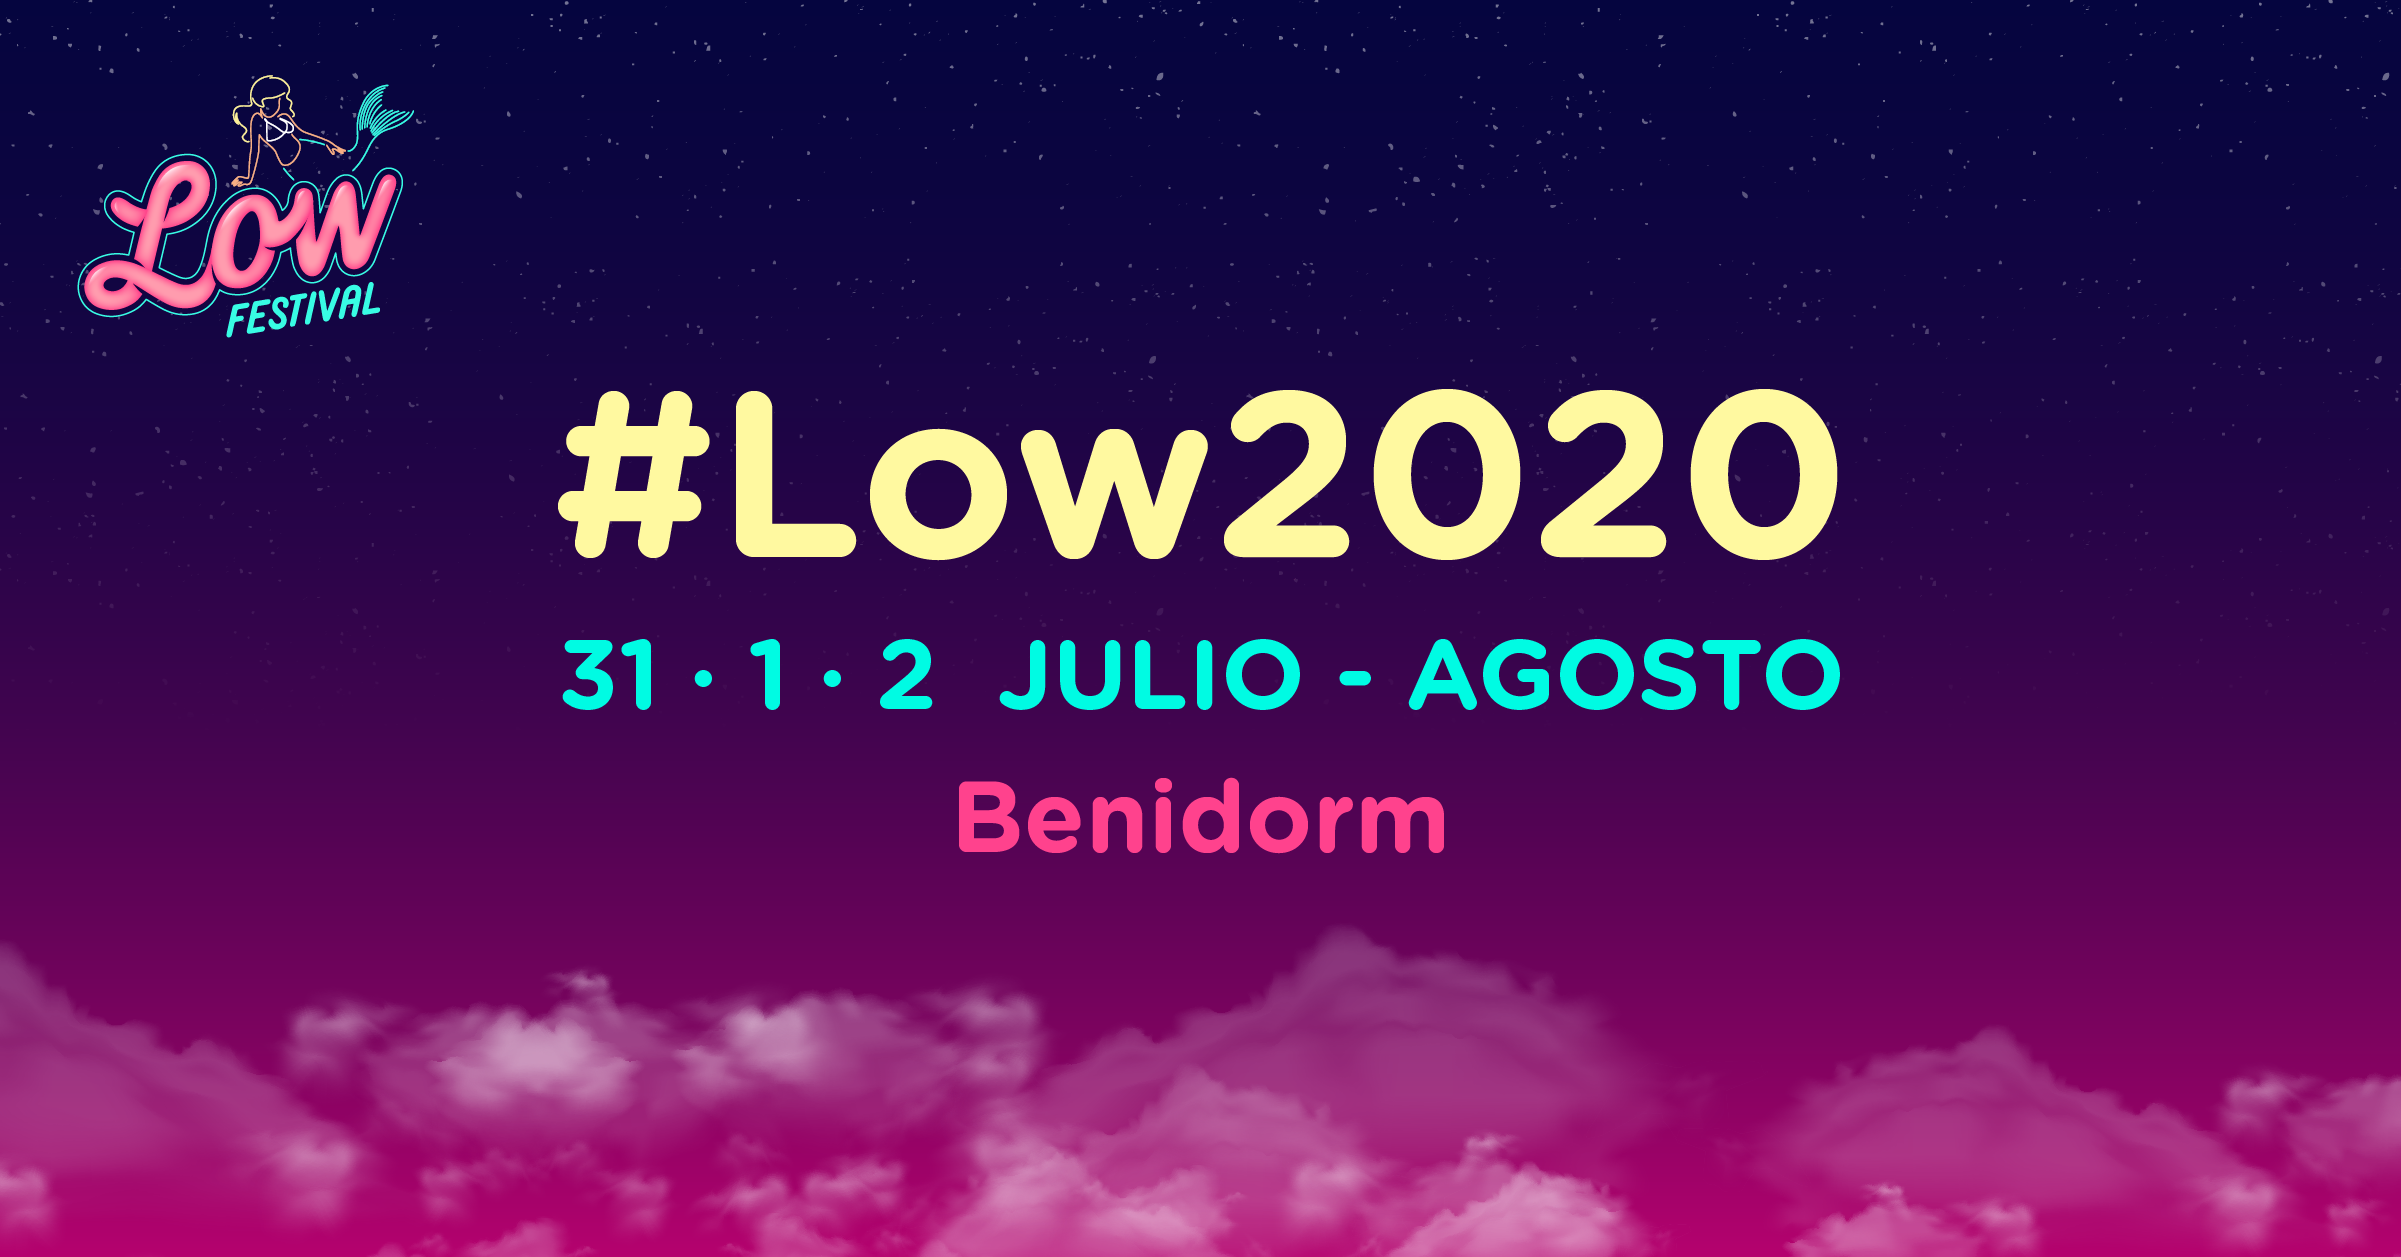 Que Pasa Festival 2020 FAQ   Low Festival 2020 | July 31 to August 2 in Benidorm